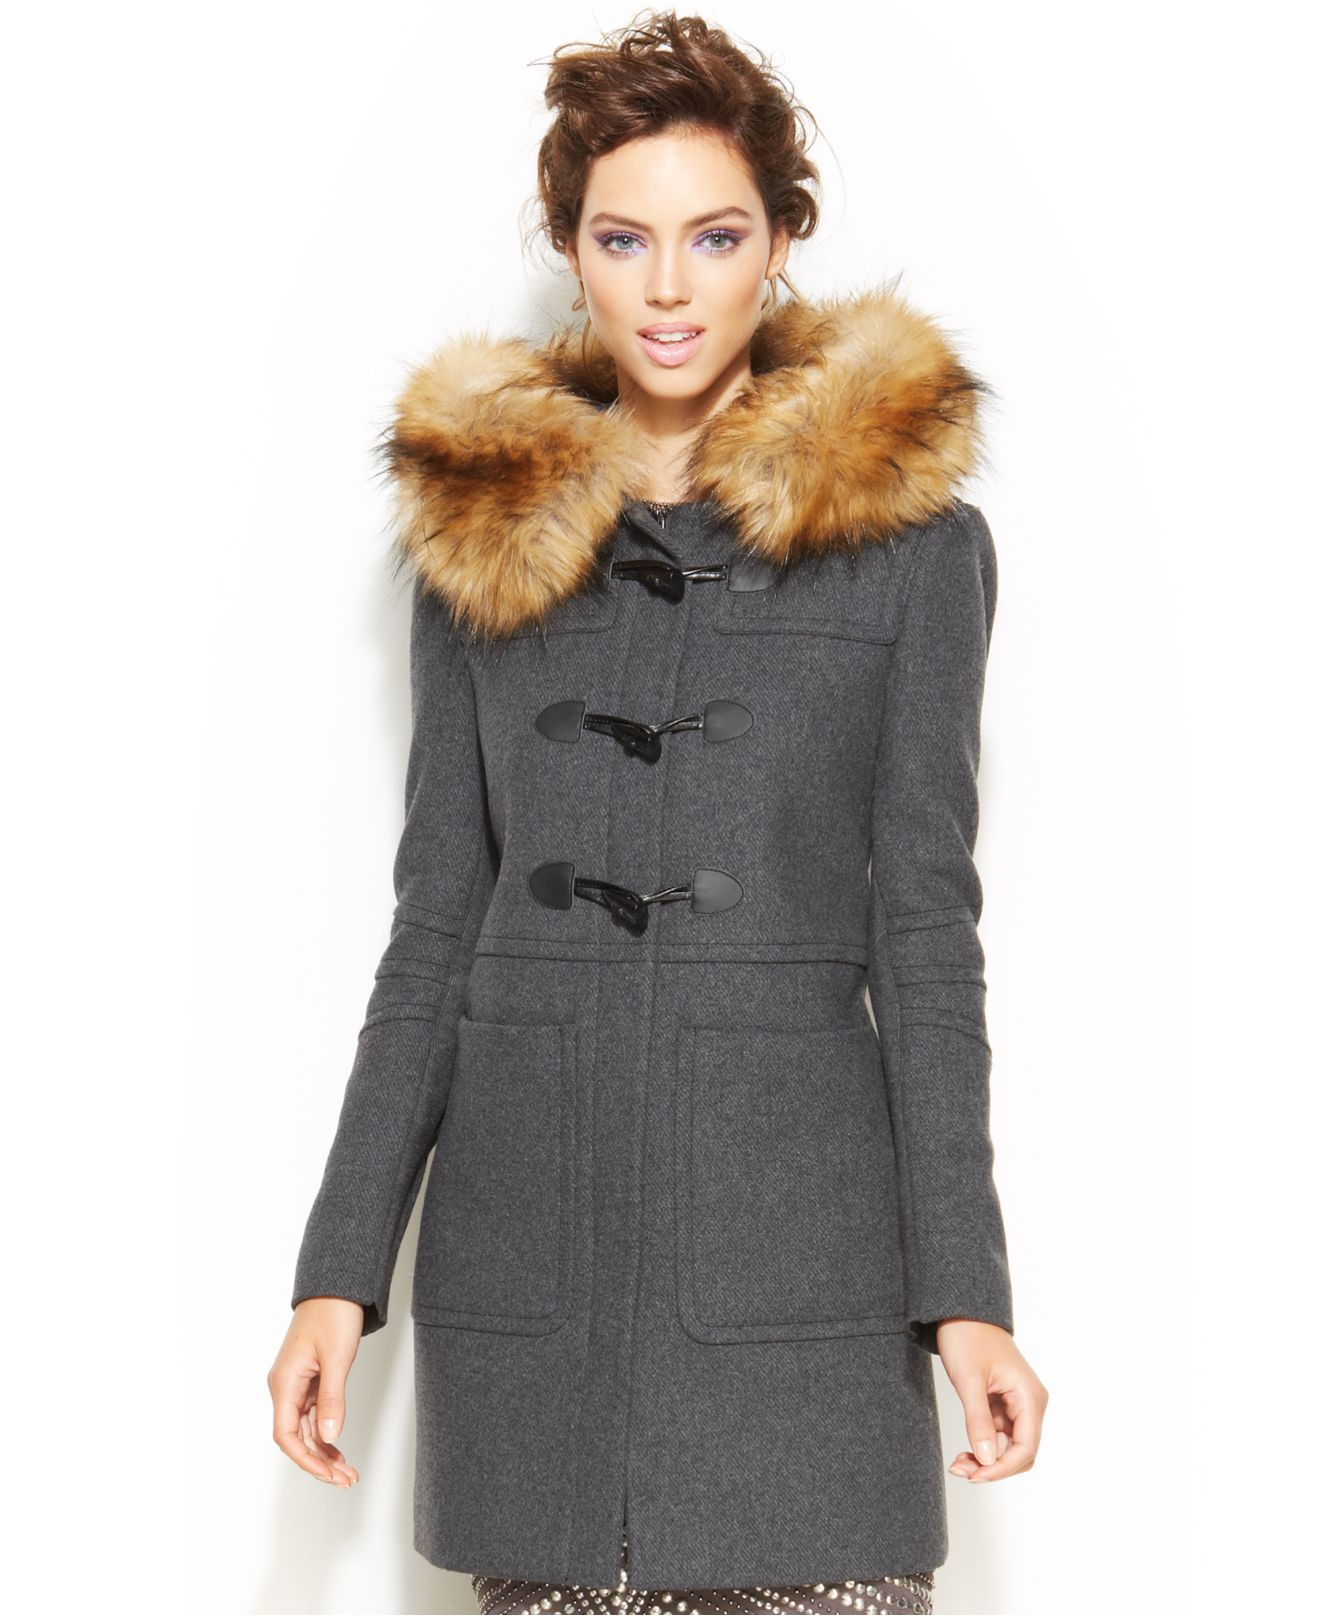 Women Faux Fur Coats - Tradingbasis